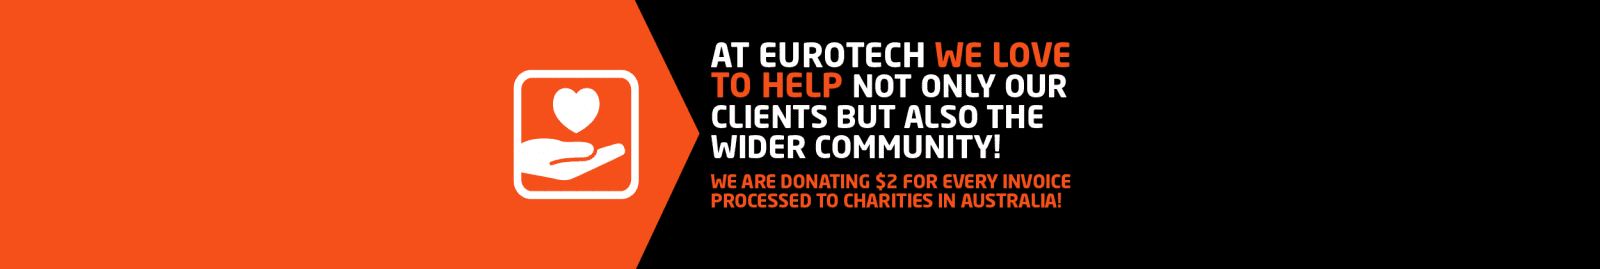 At eurotech we love to help not only our clients but also the community! we are donating $2 for every invoice processed to charities in Australia!